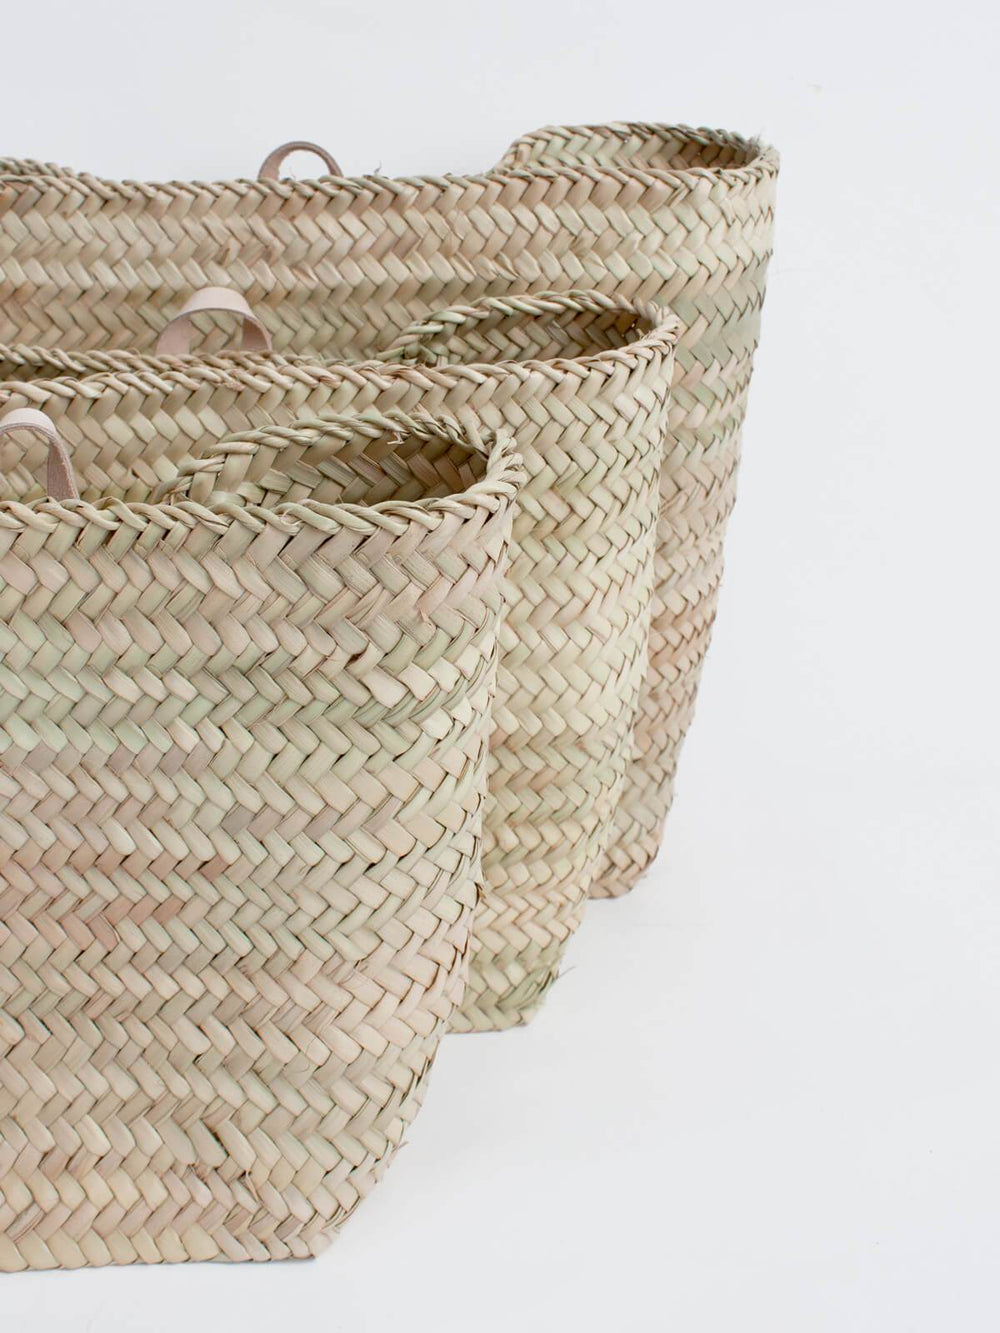 Large Handwoven Wall Basket - Amethyst Home